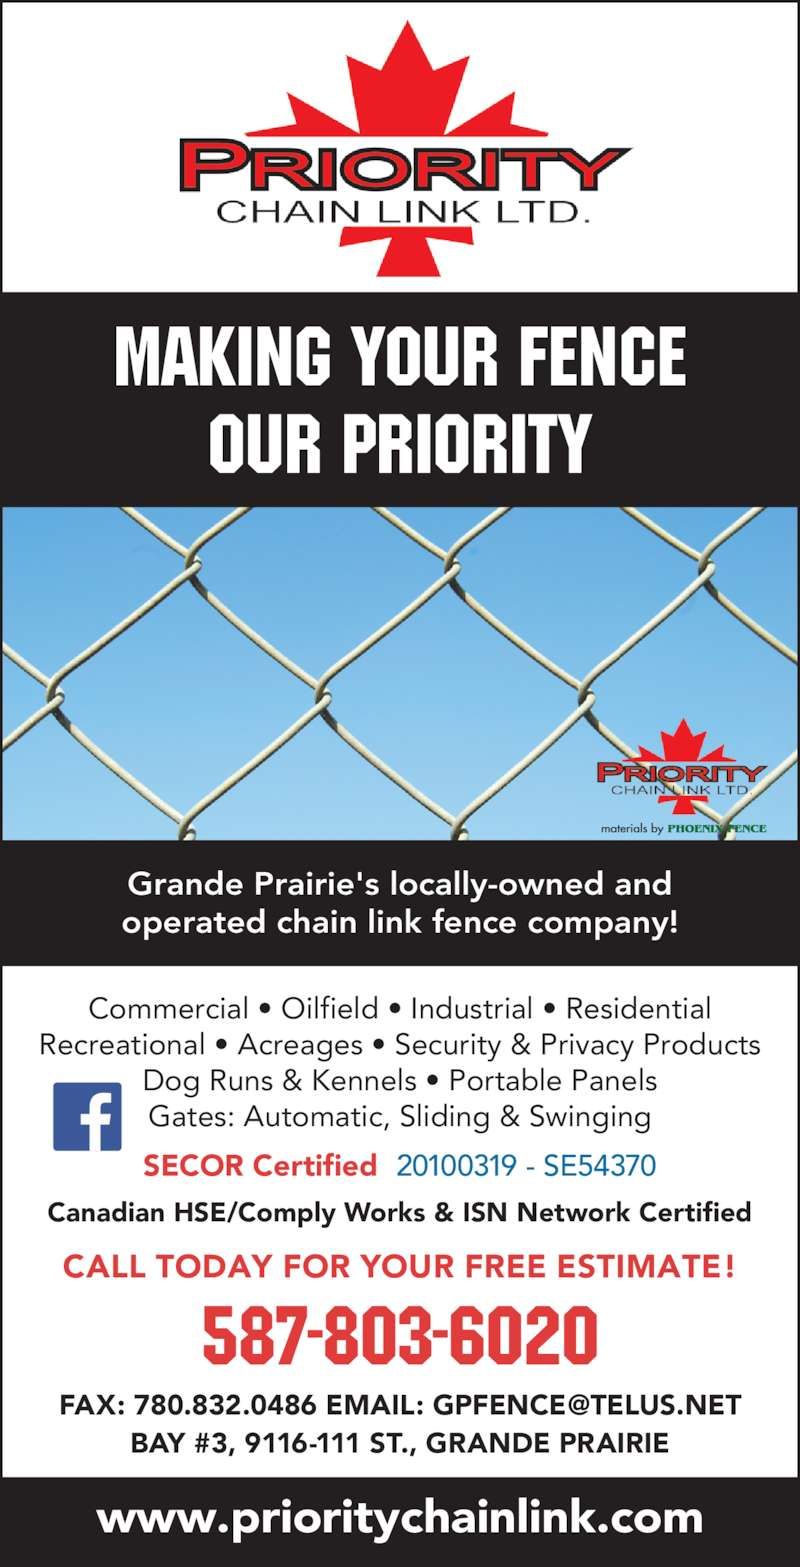 Priority Chain Link Ltd (780-832-0000) - Display Ad - CALL TODAY FOR YOUR FREE ESTIMATE! 587-803-6020 Canadian HSE/Comply Works & ISN Network Certified www.prioritychainlink.com Making your FENCE our Priority Grande Prairie's locally-owned and operated chain link fence company! SECOR Certified 20100319 - SE54370 Commercial ? Oilfield ? Industrial ? Residential Recreational ? Acreages ? Security & Privacy Products Dog Runs & Kennels ? Portable Panels Gates: Automatic, Sliding & Swinging BAY #3, 9116-111 ST., GRANDE PRAIRIE